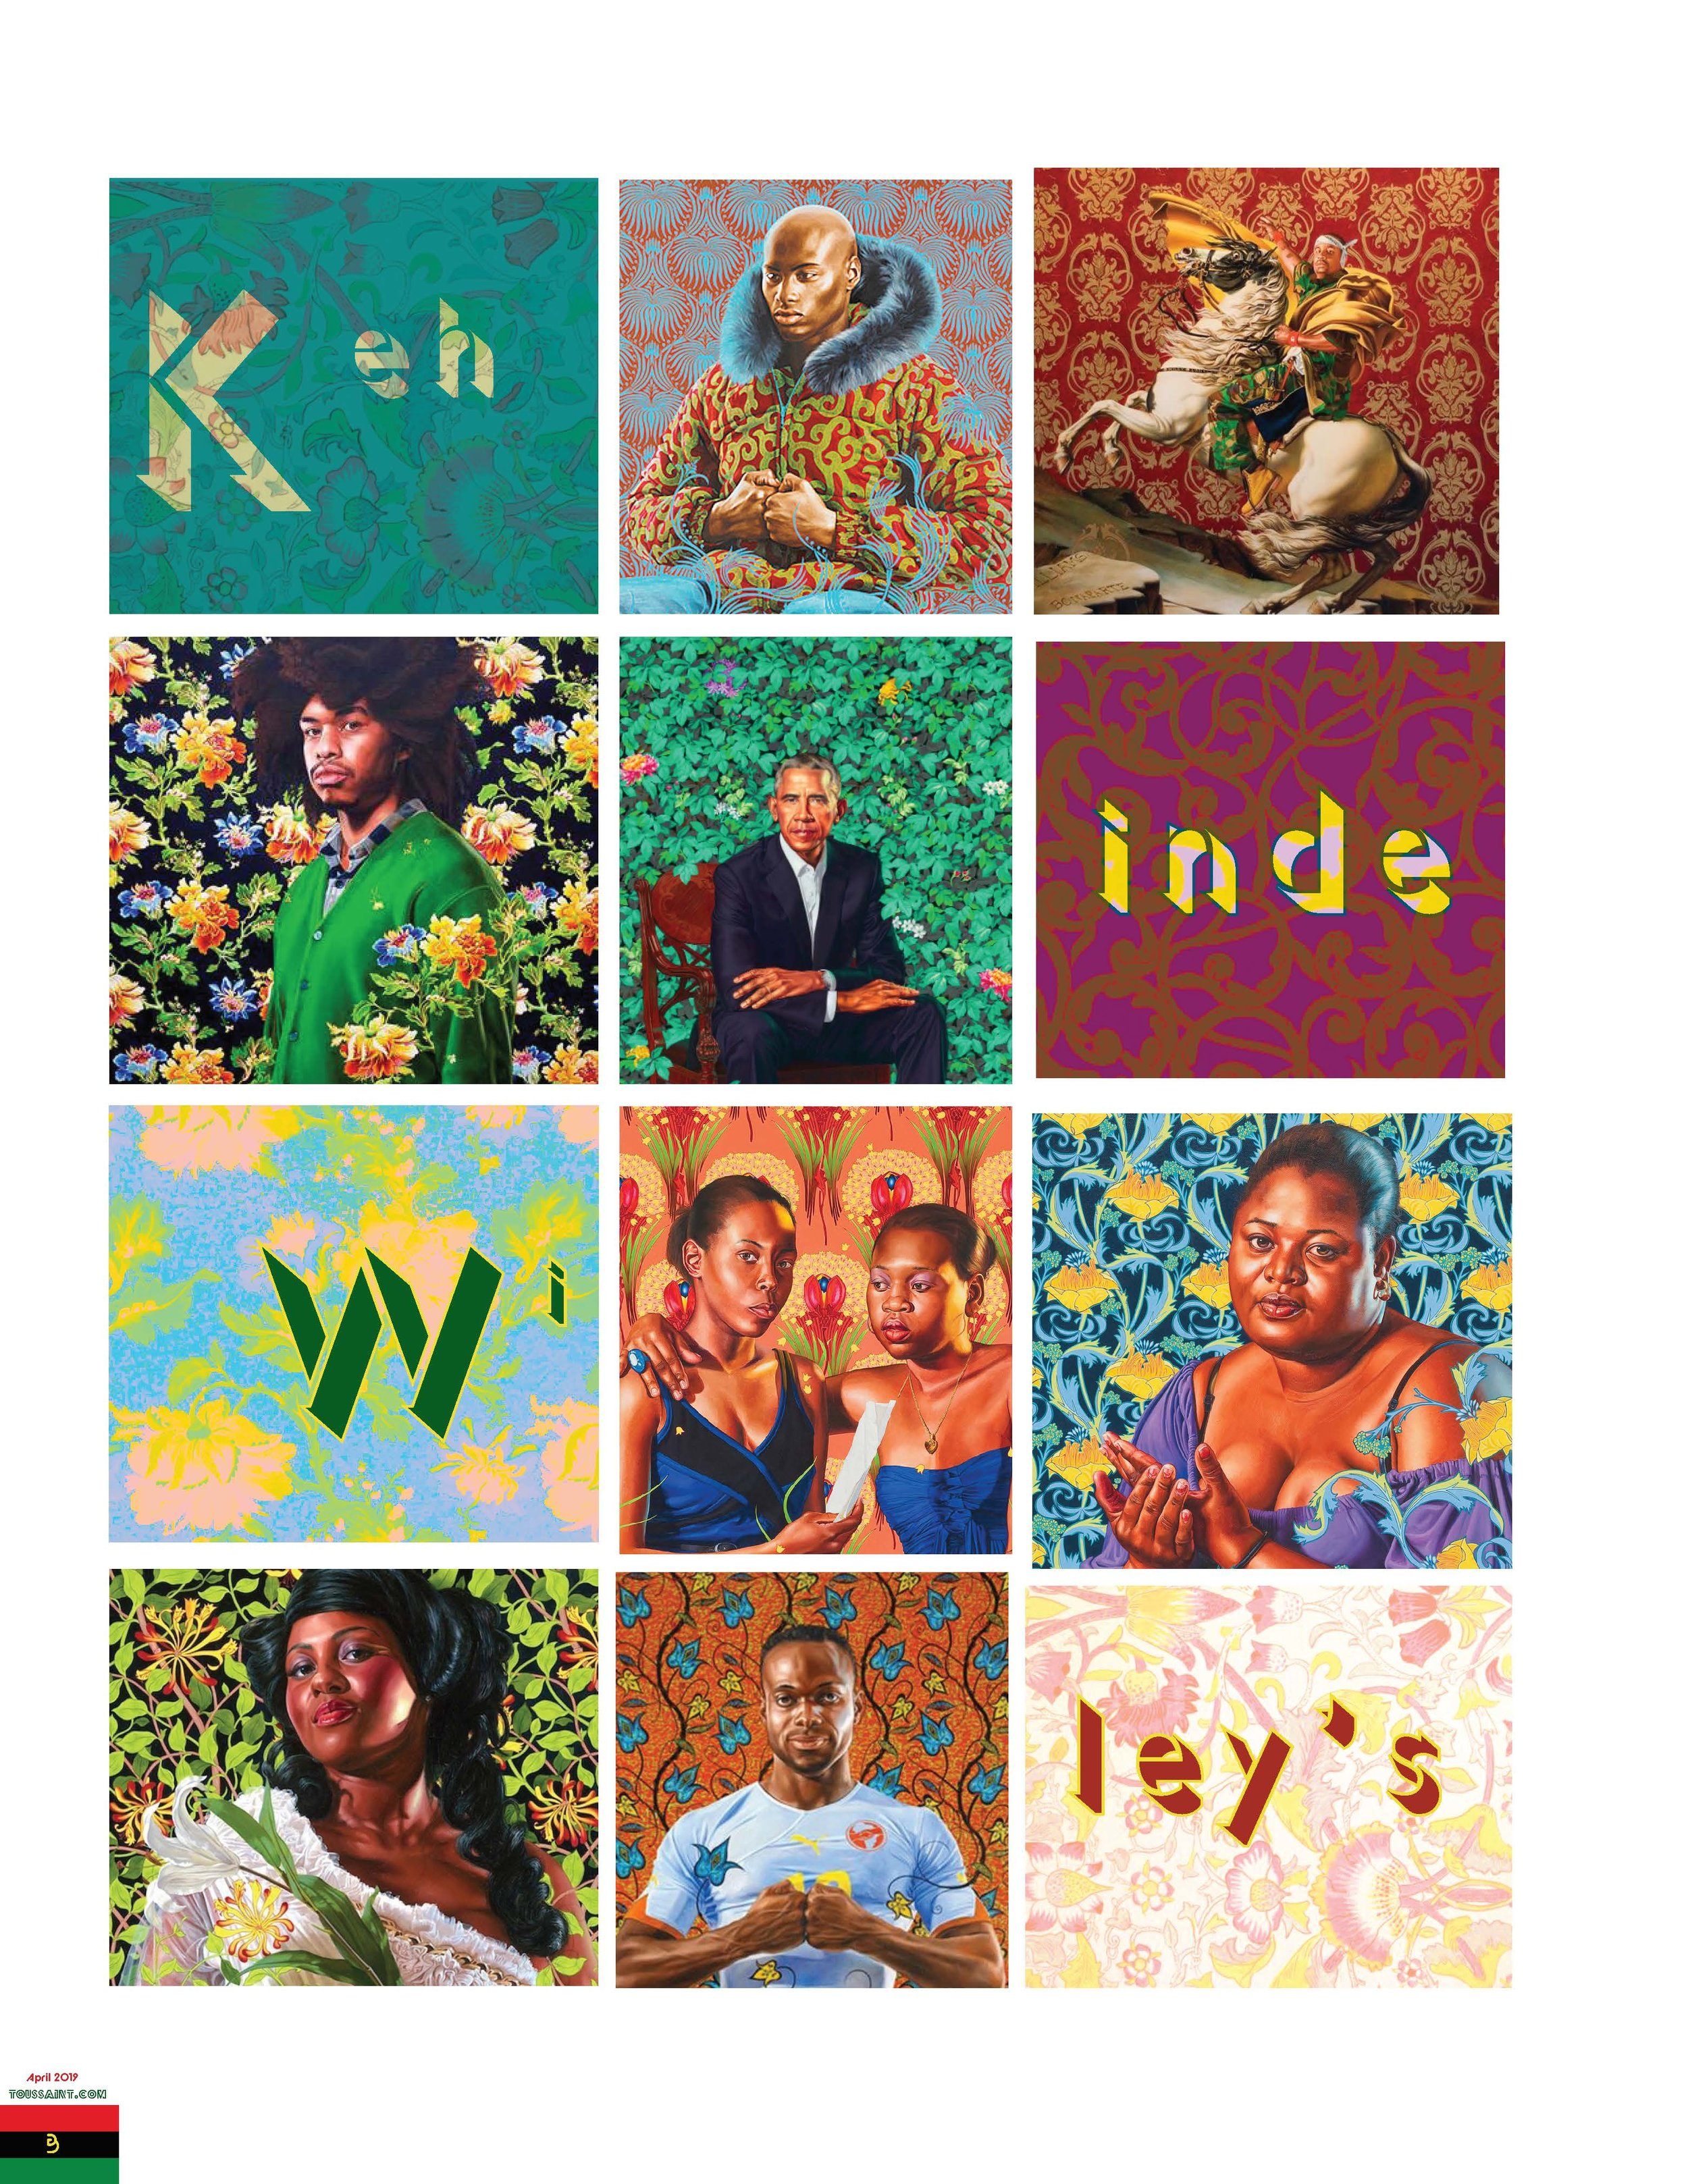 A Kehinde Wiley article for the Front of The Book I